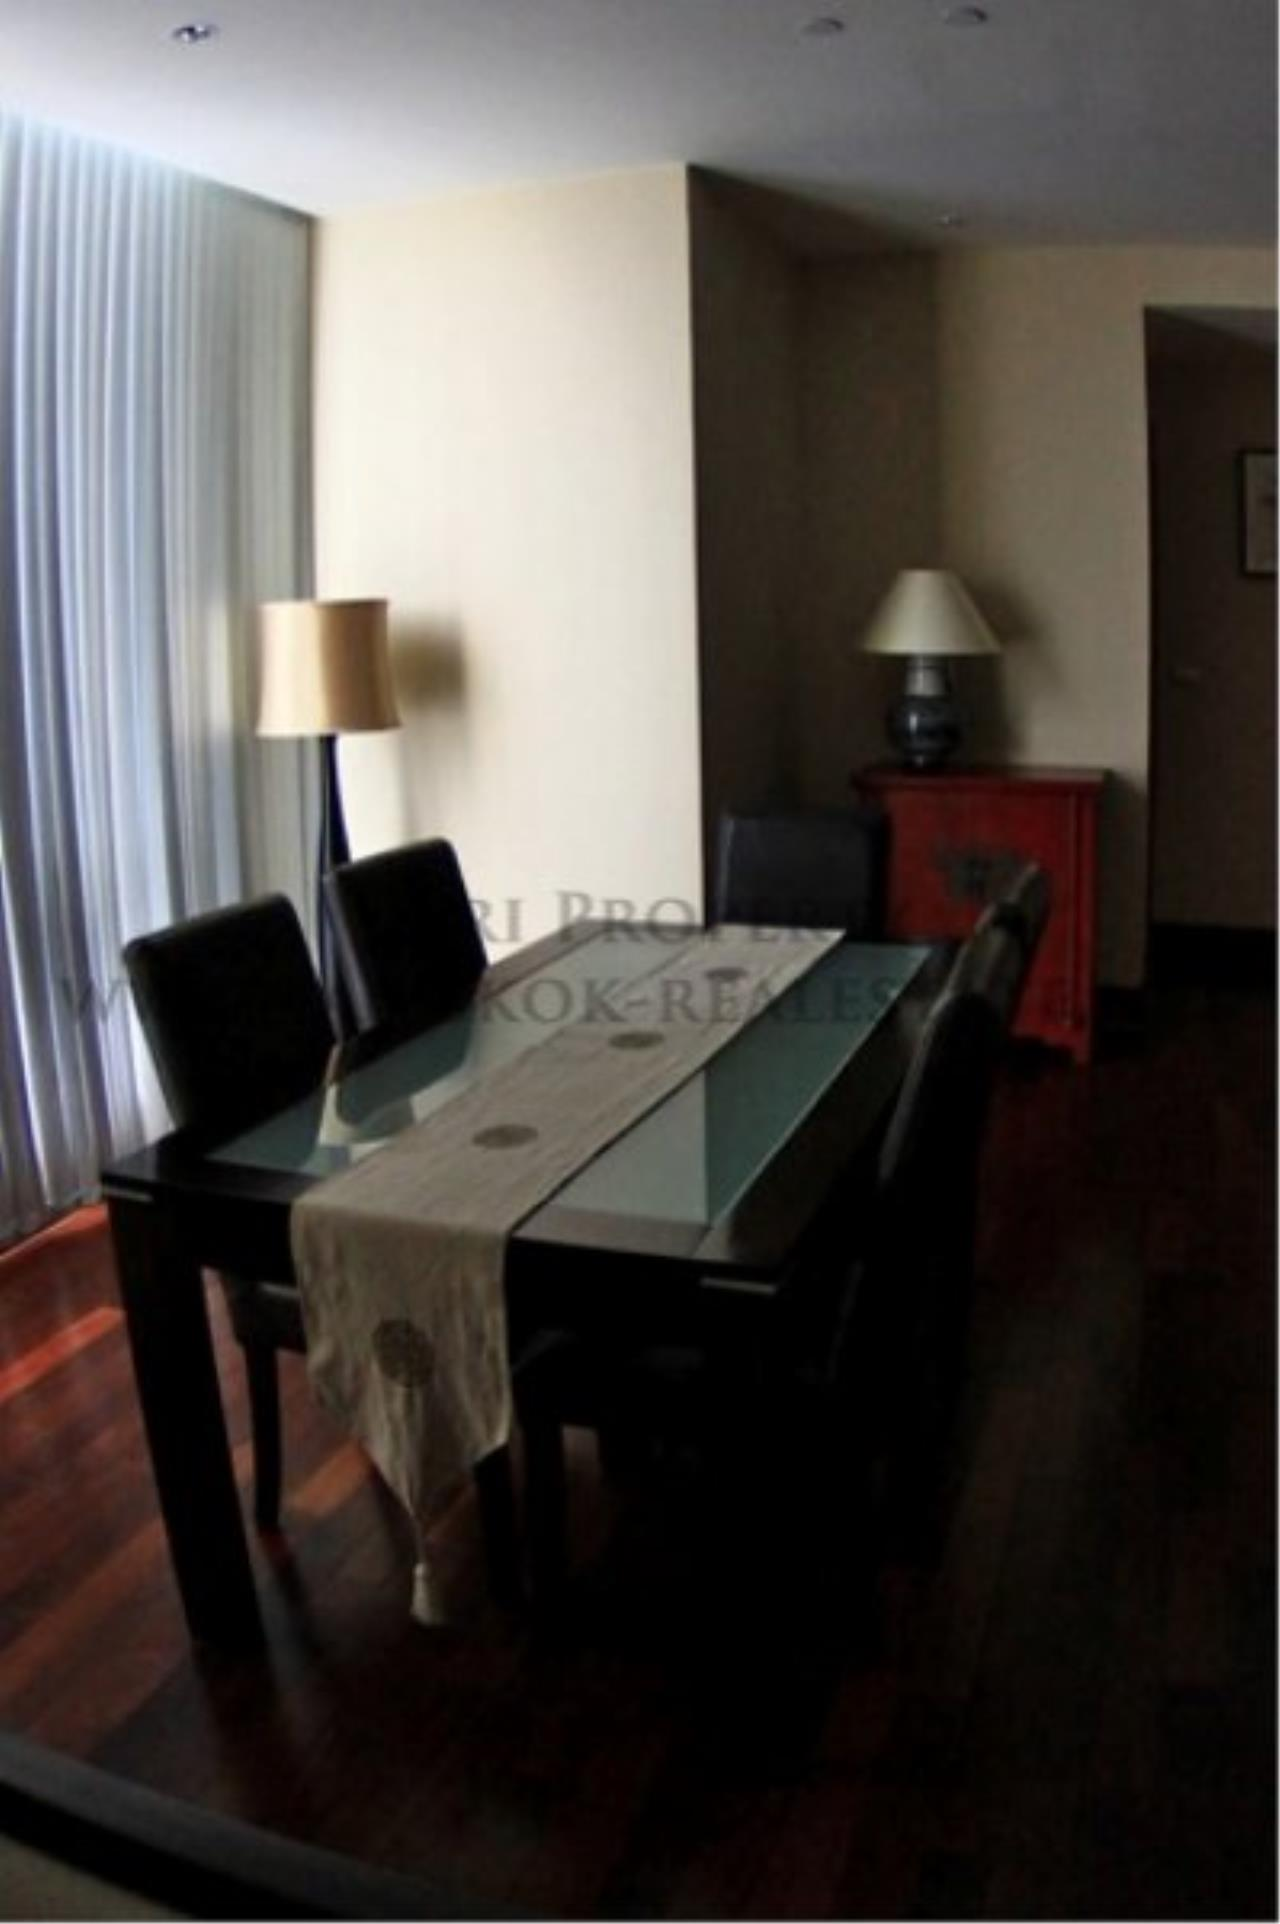 Piri Property Agency's Ascott Sathorn - 2 Bedroom Condo on high Floor for Sale - 109 SQM 6